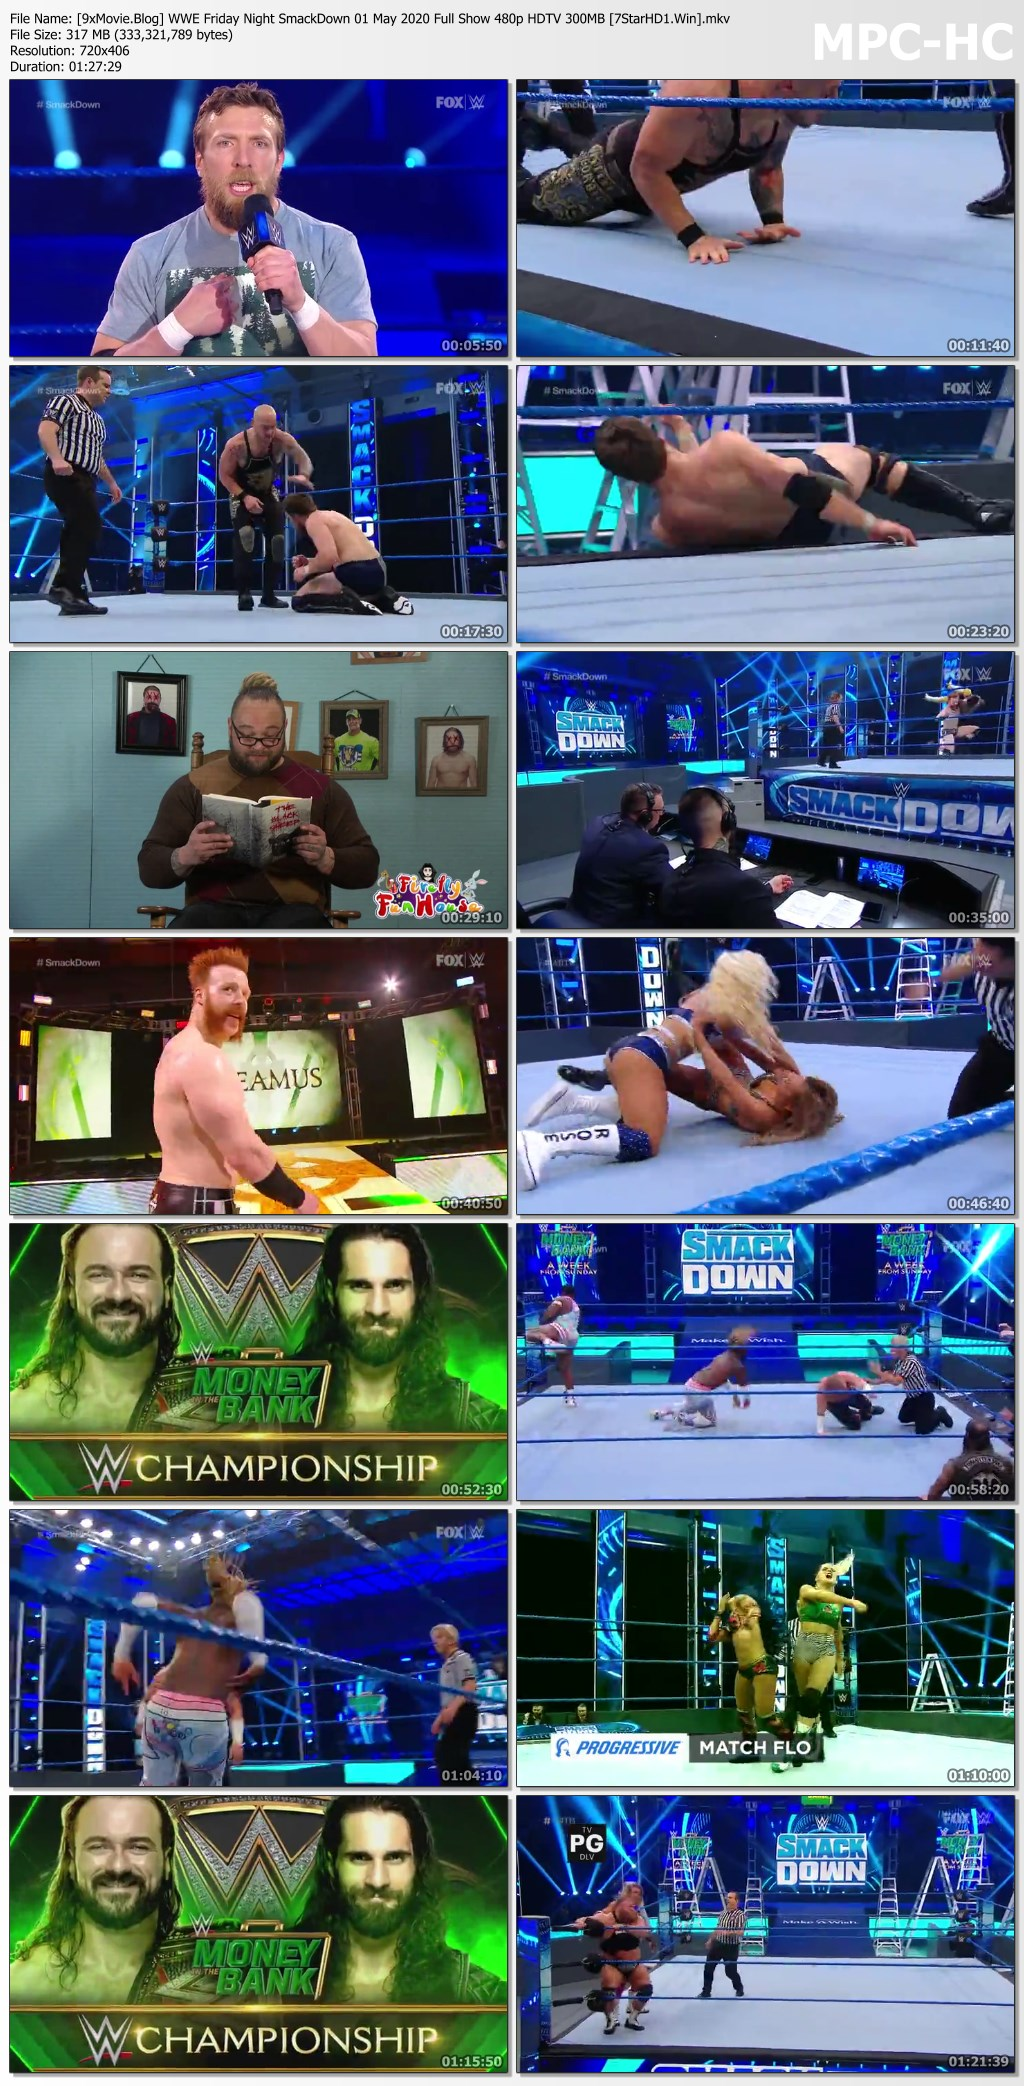 WWE Friday Night SmackDown 01 May 2020 Full Show 480p HDTV x264 300MB